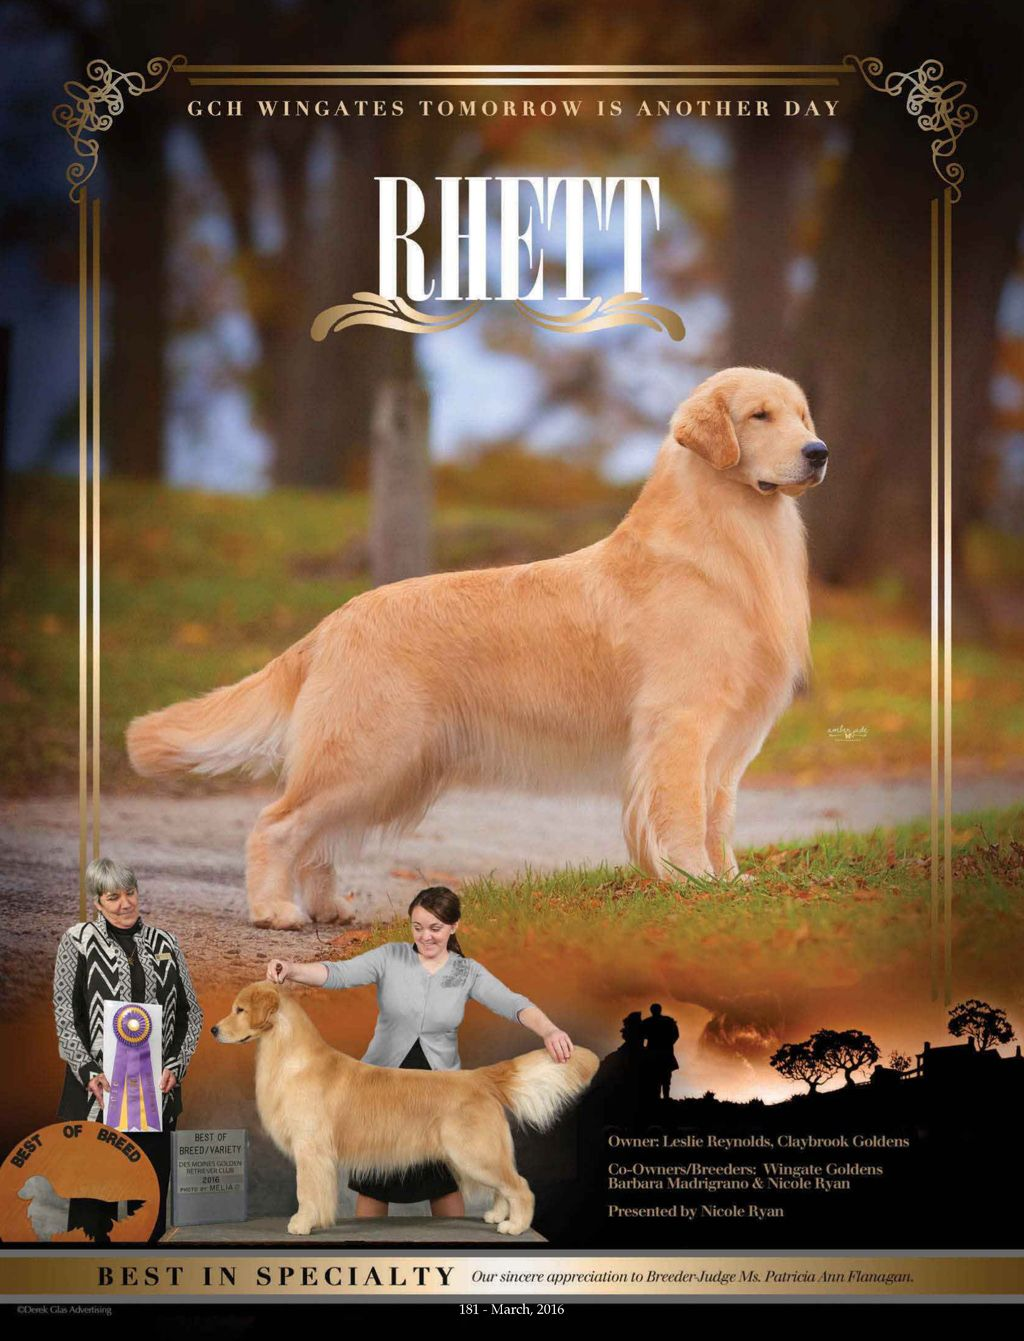 Gch Wingate S Tomorrow Is Another Day 7 2 2013 Golden Retriever